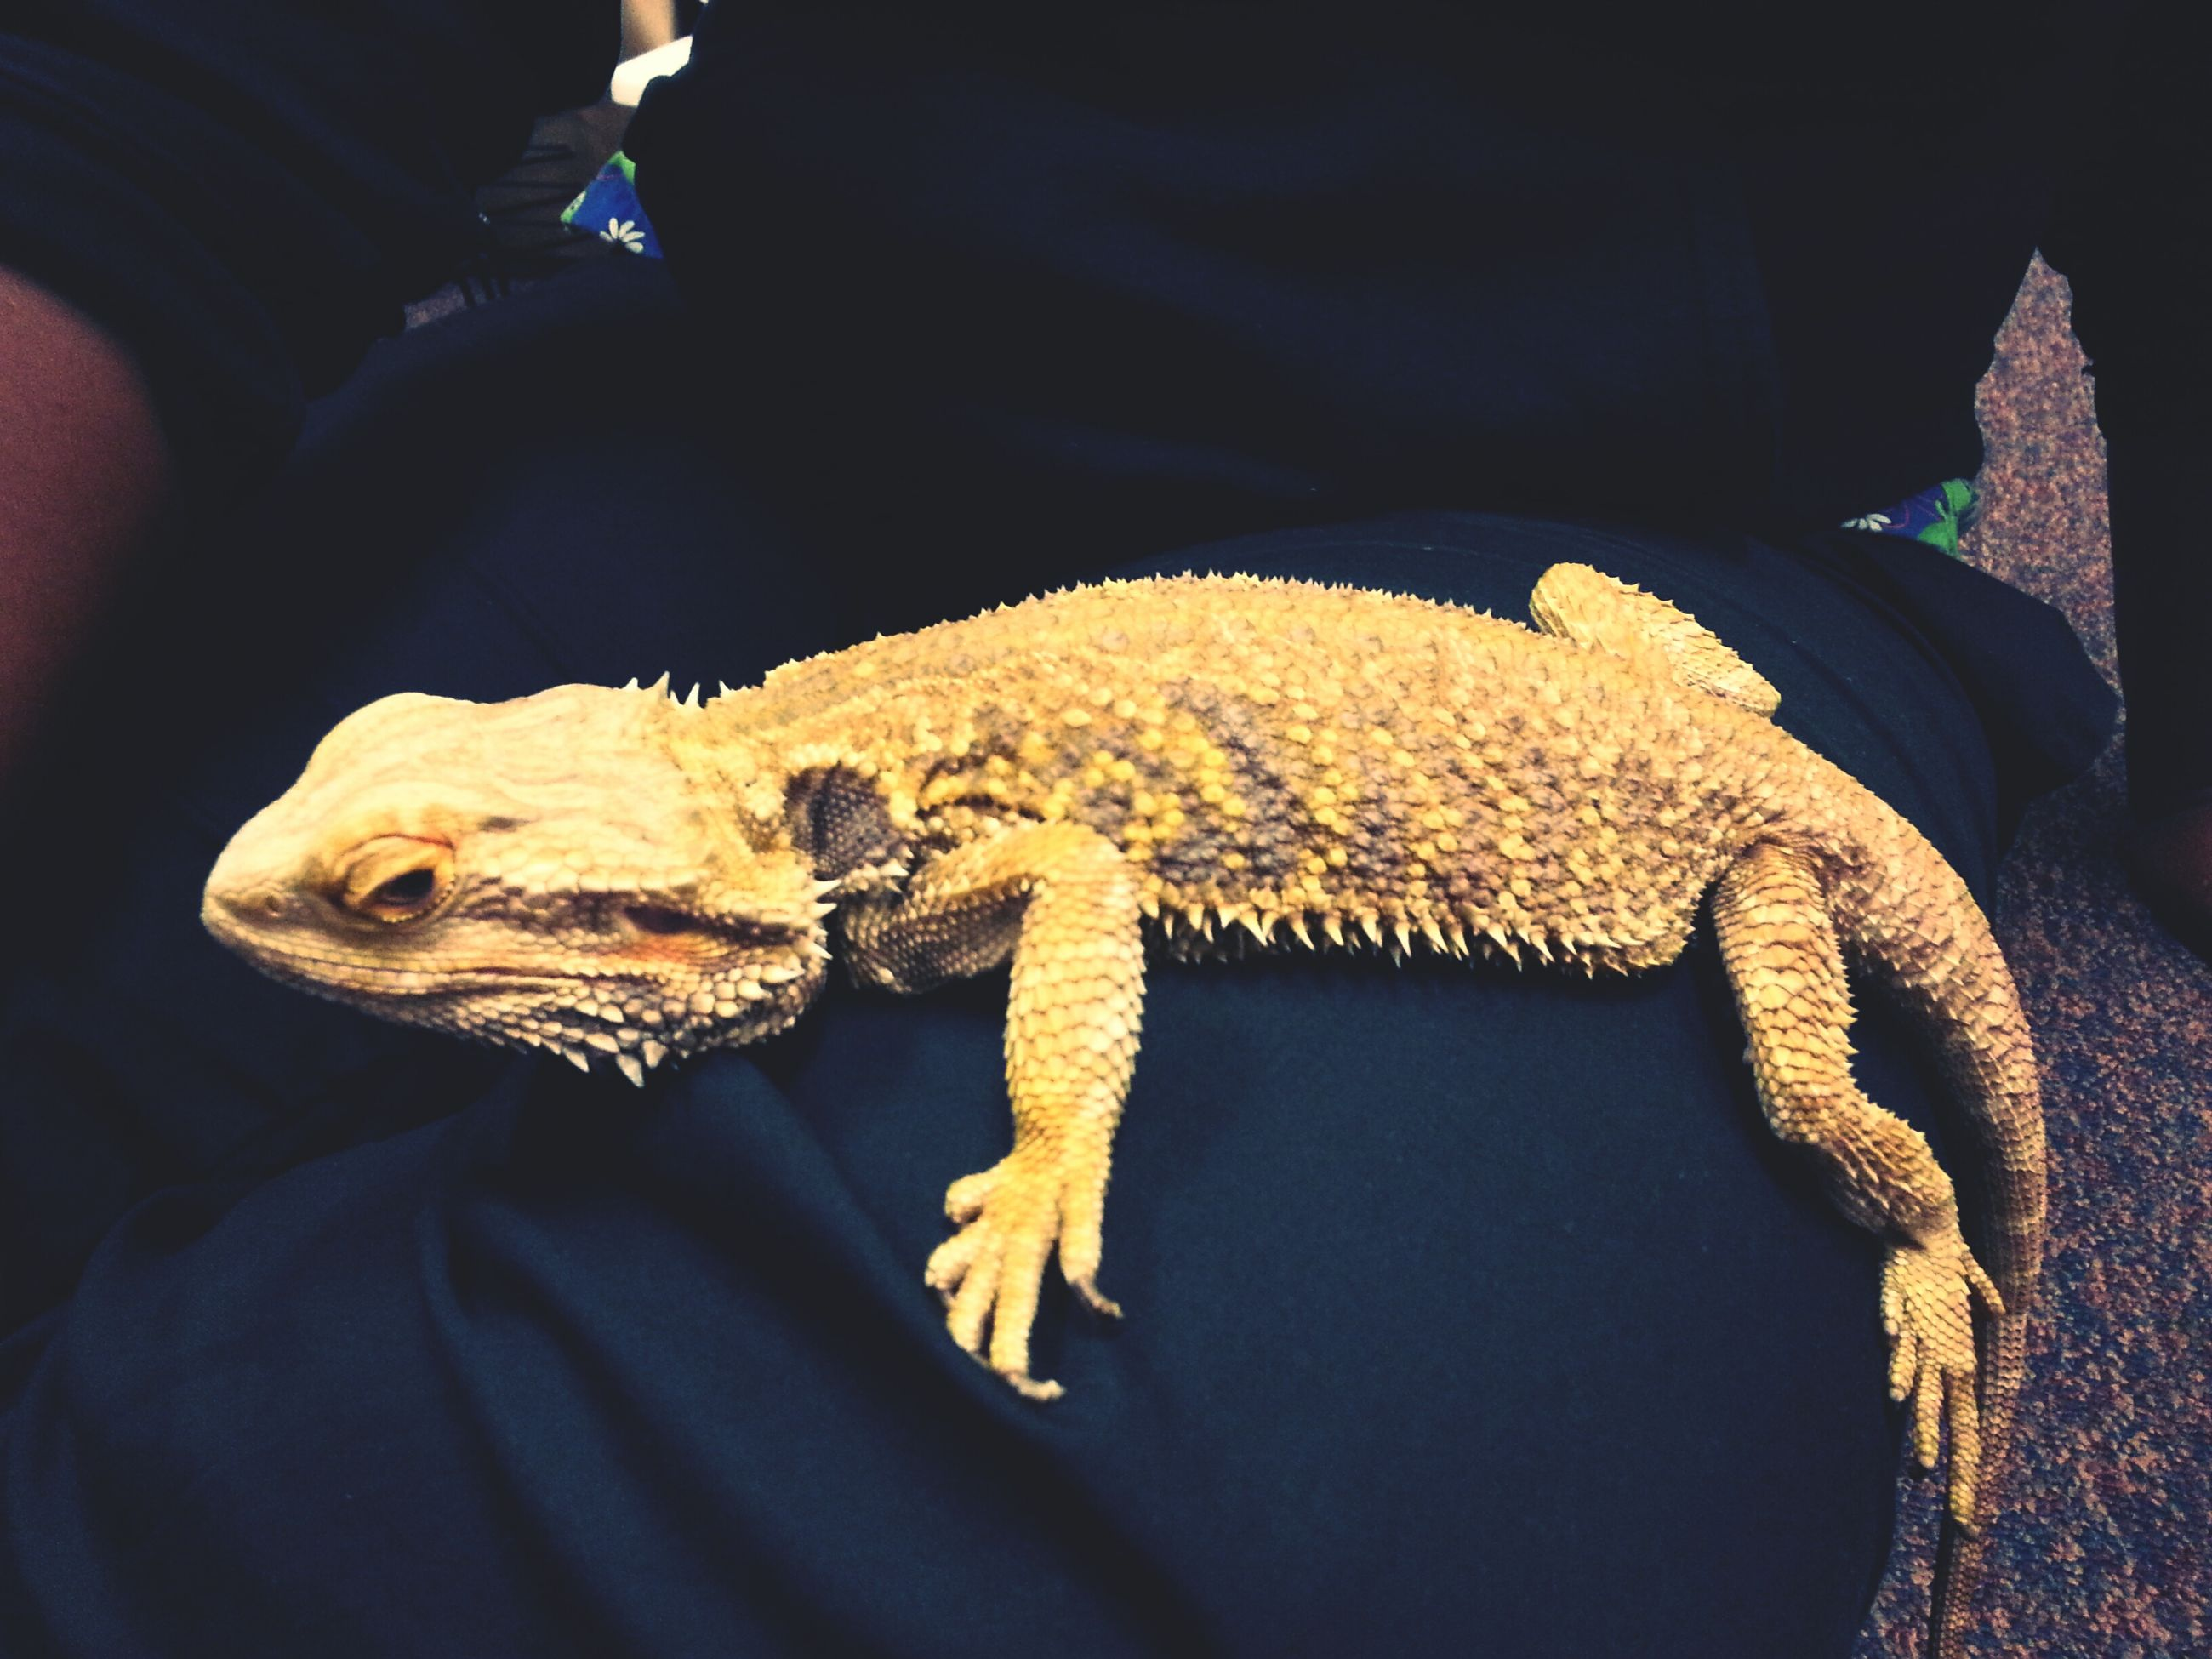 animal themes, person, one animal, animals in the wild, indoors, wildlife, holding, reptile, lifestyles, men, part of, lizard, unrecognizable person, close-up, leisure activity, high angle view, midsection